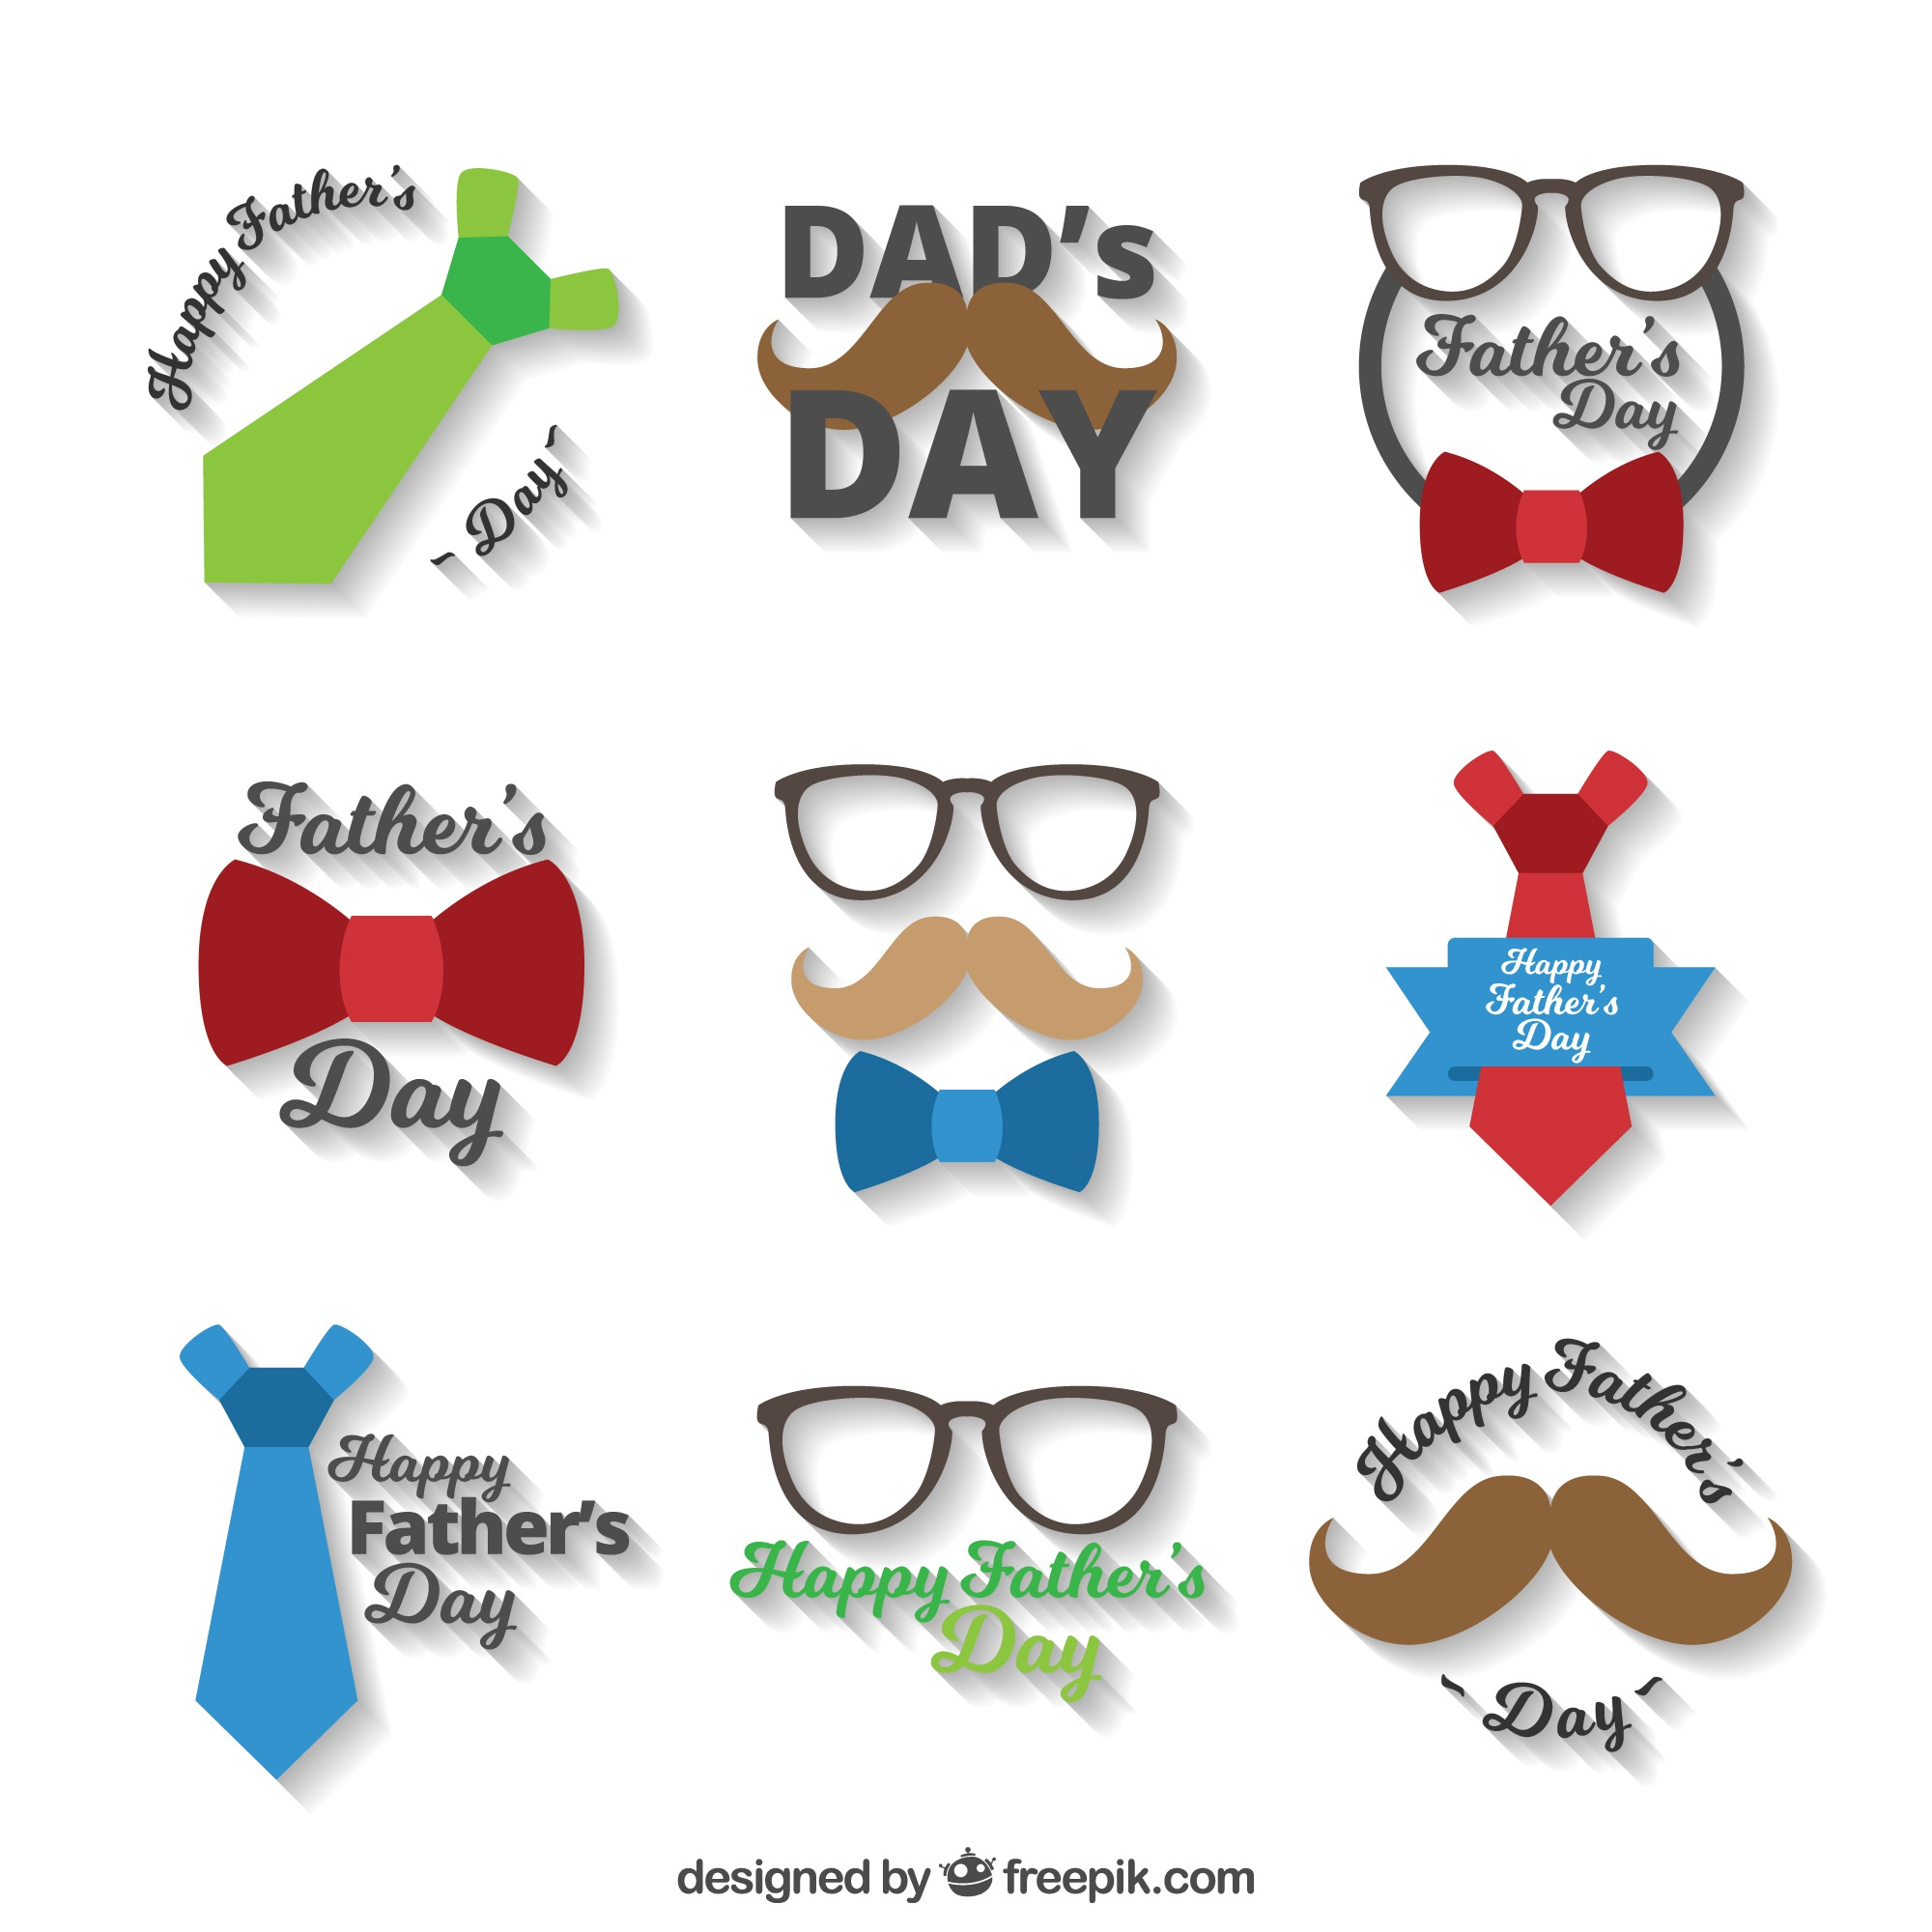 Great pack of flat stickers for father's day